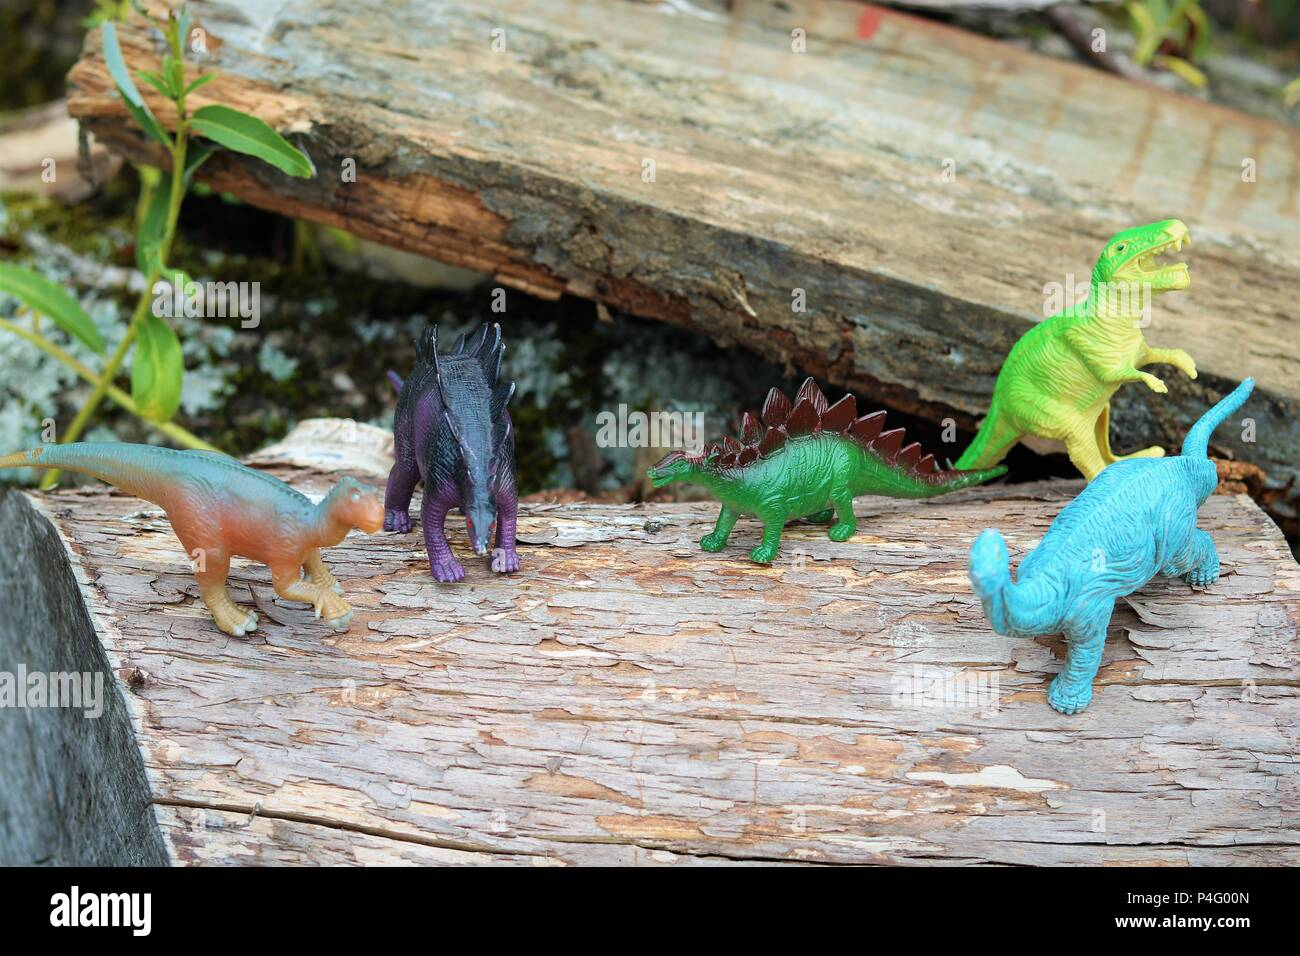 Plastic toy dinosaurs - News Concept - Stock Image